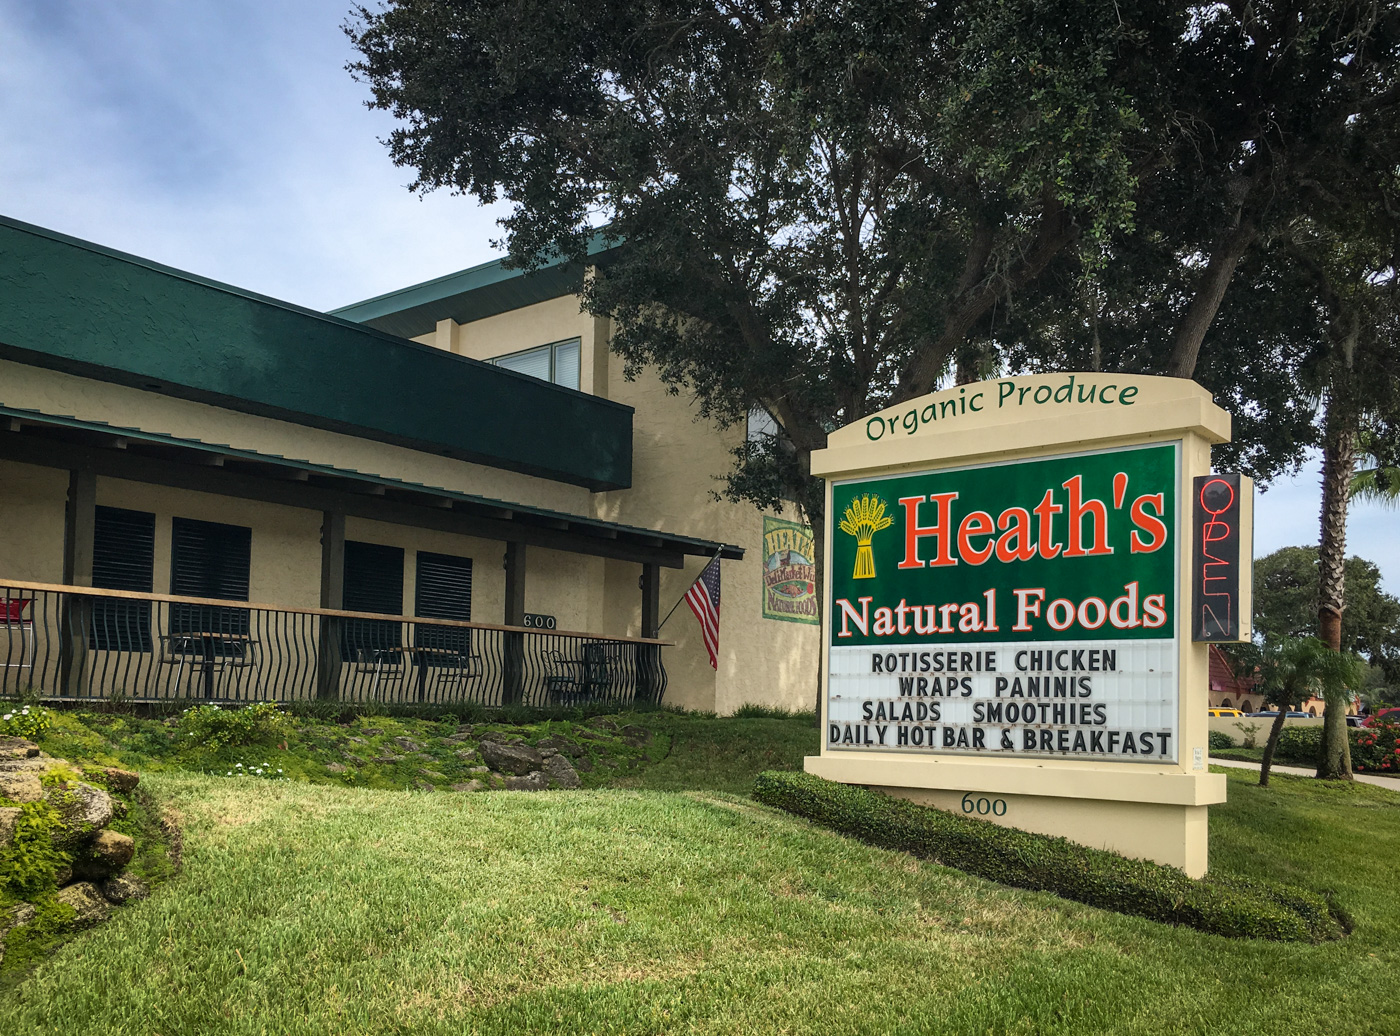 Exterior Heaths Natural Foods Cafe 1